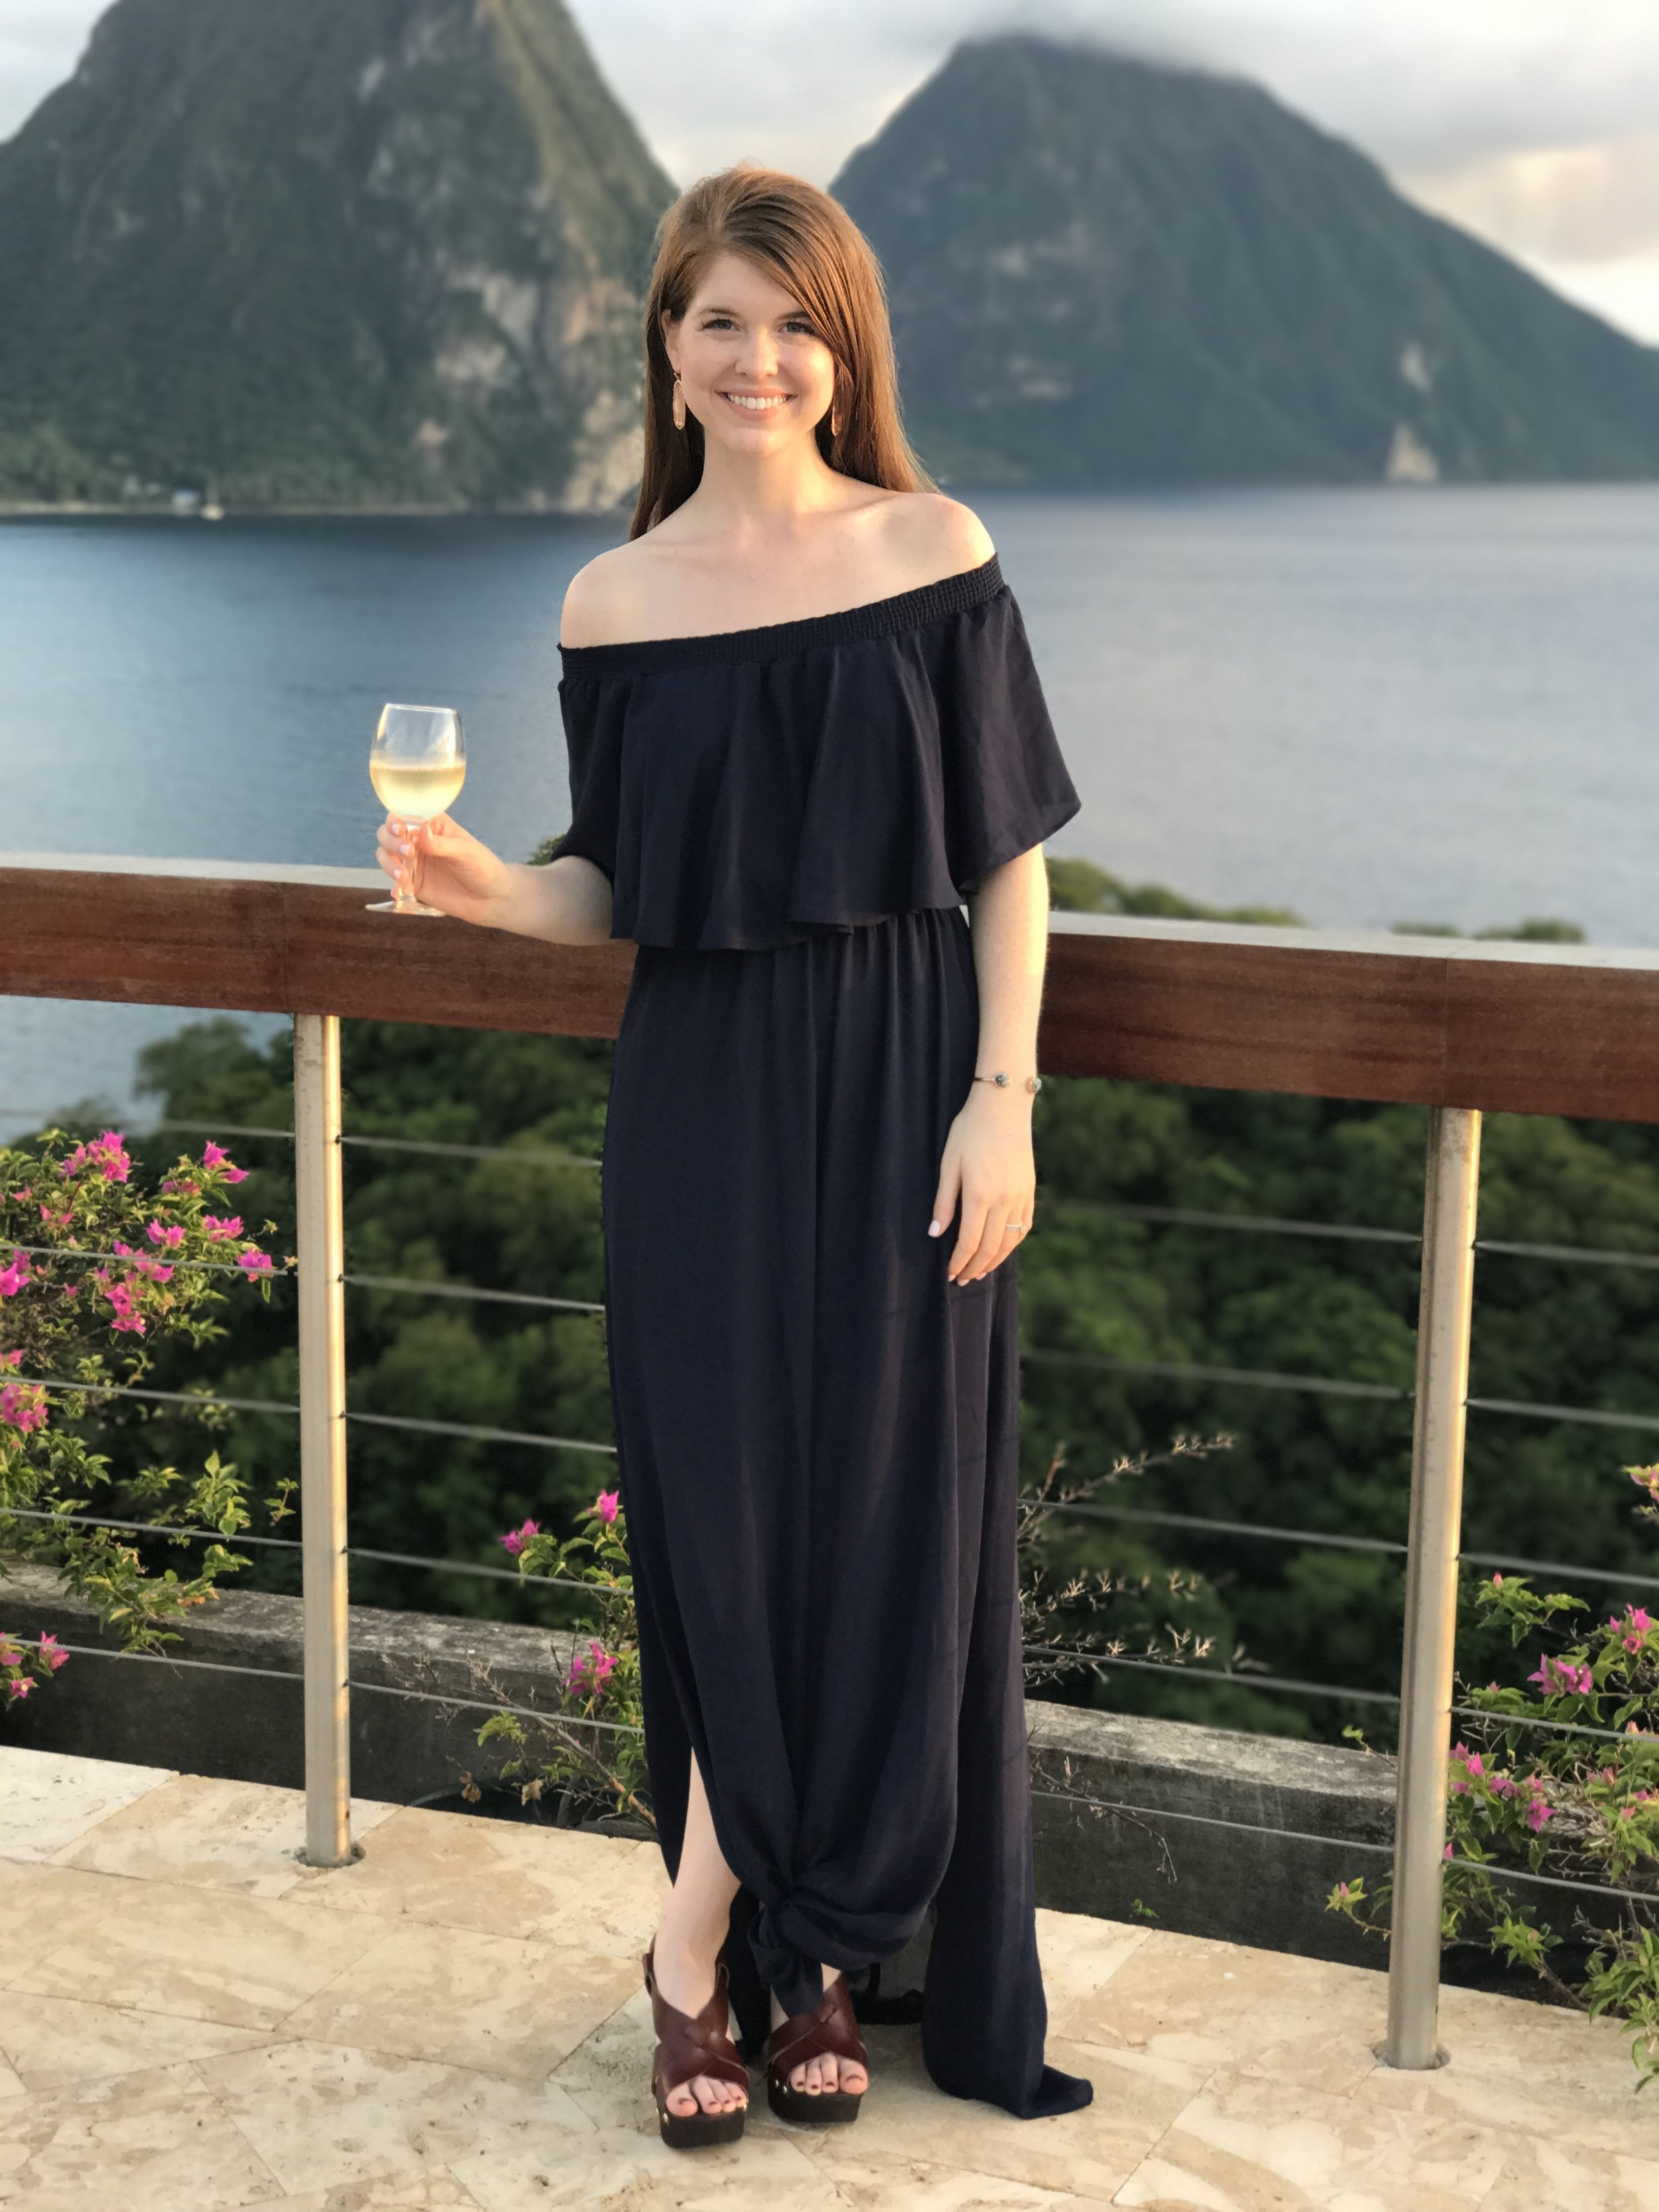 why you should do premarital counseling, merge, watermark, premarital counseling in dallas, Hacienda Convertible Off the Shoulder A-Line Gown, saint lucia, honeymoon, jade mountain